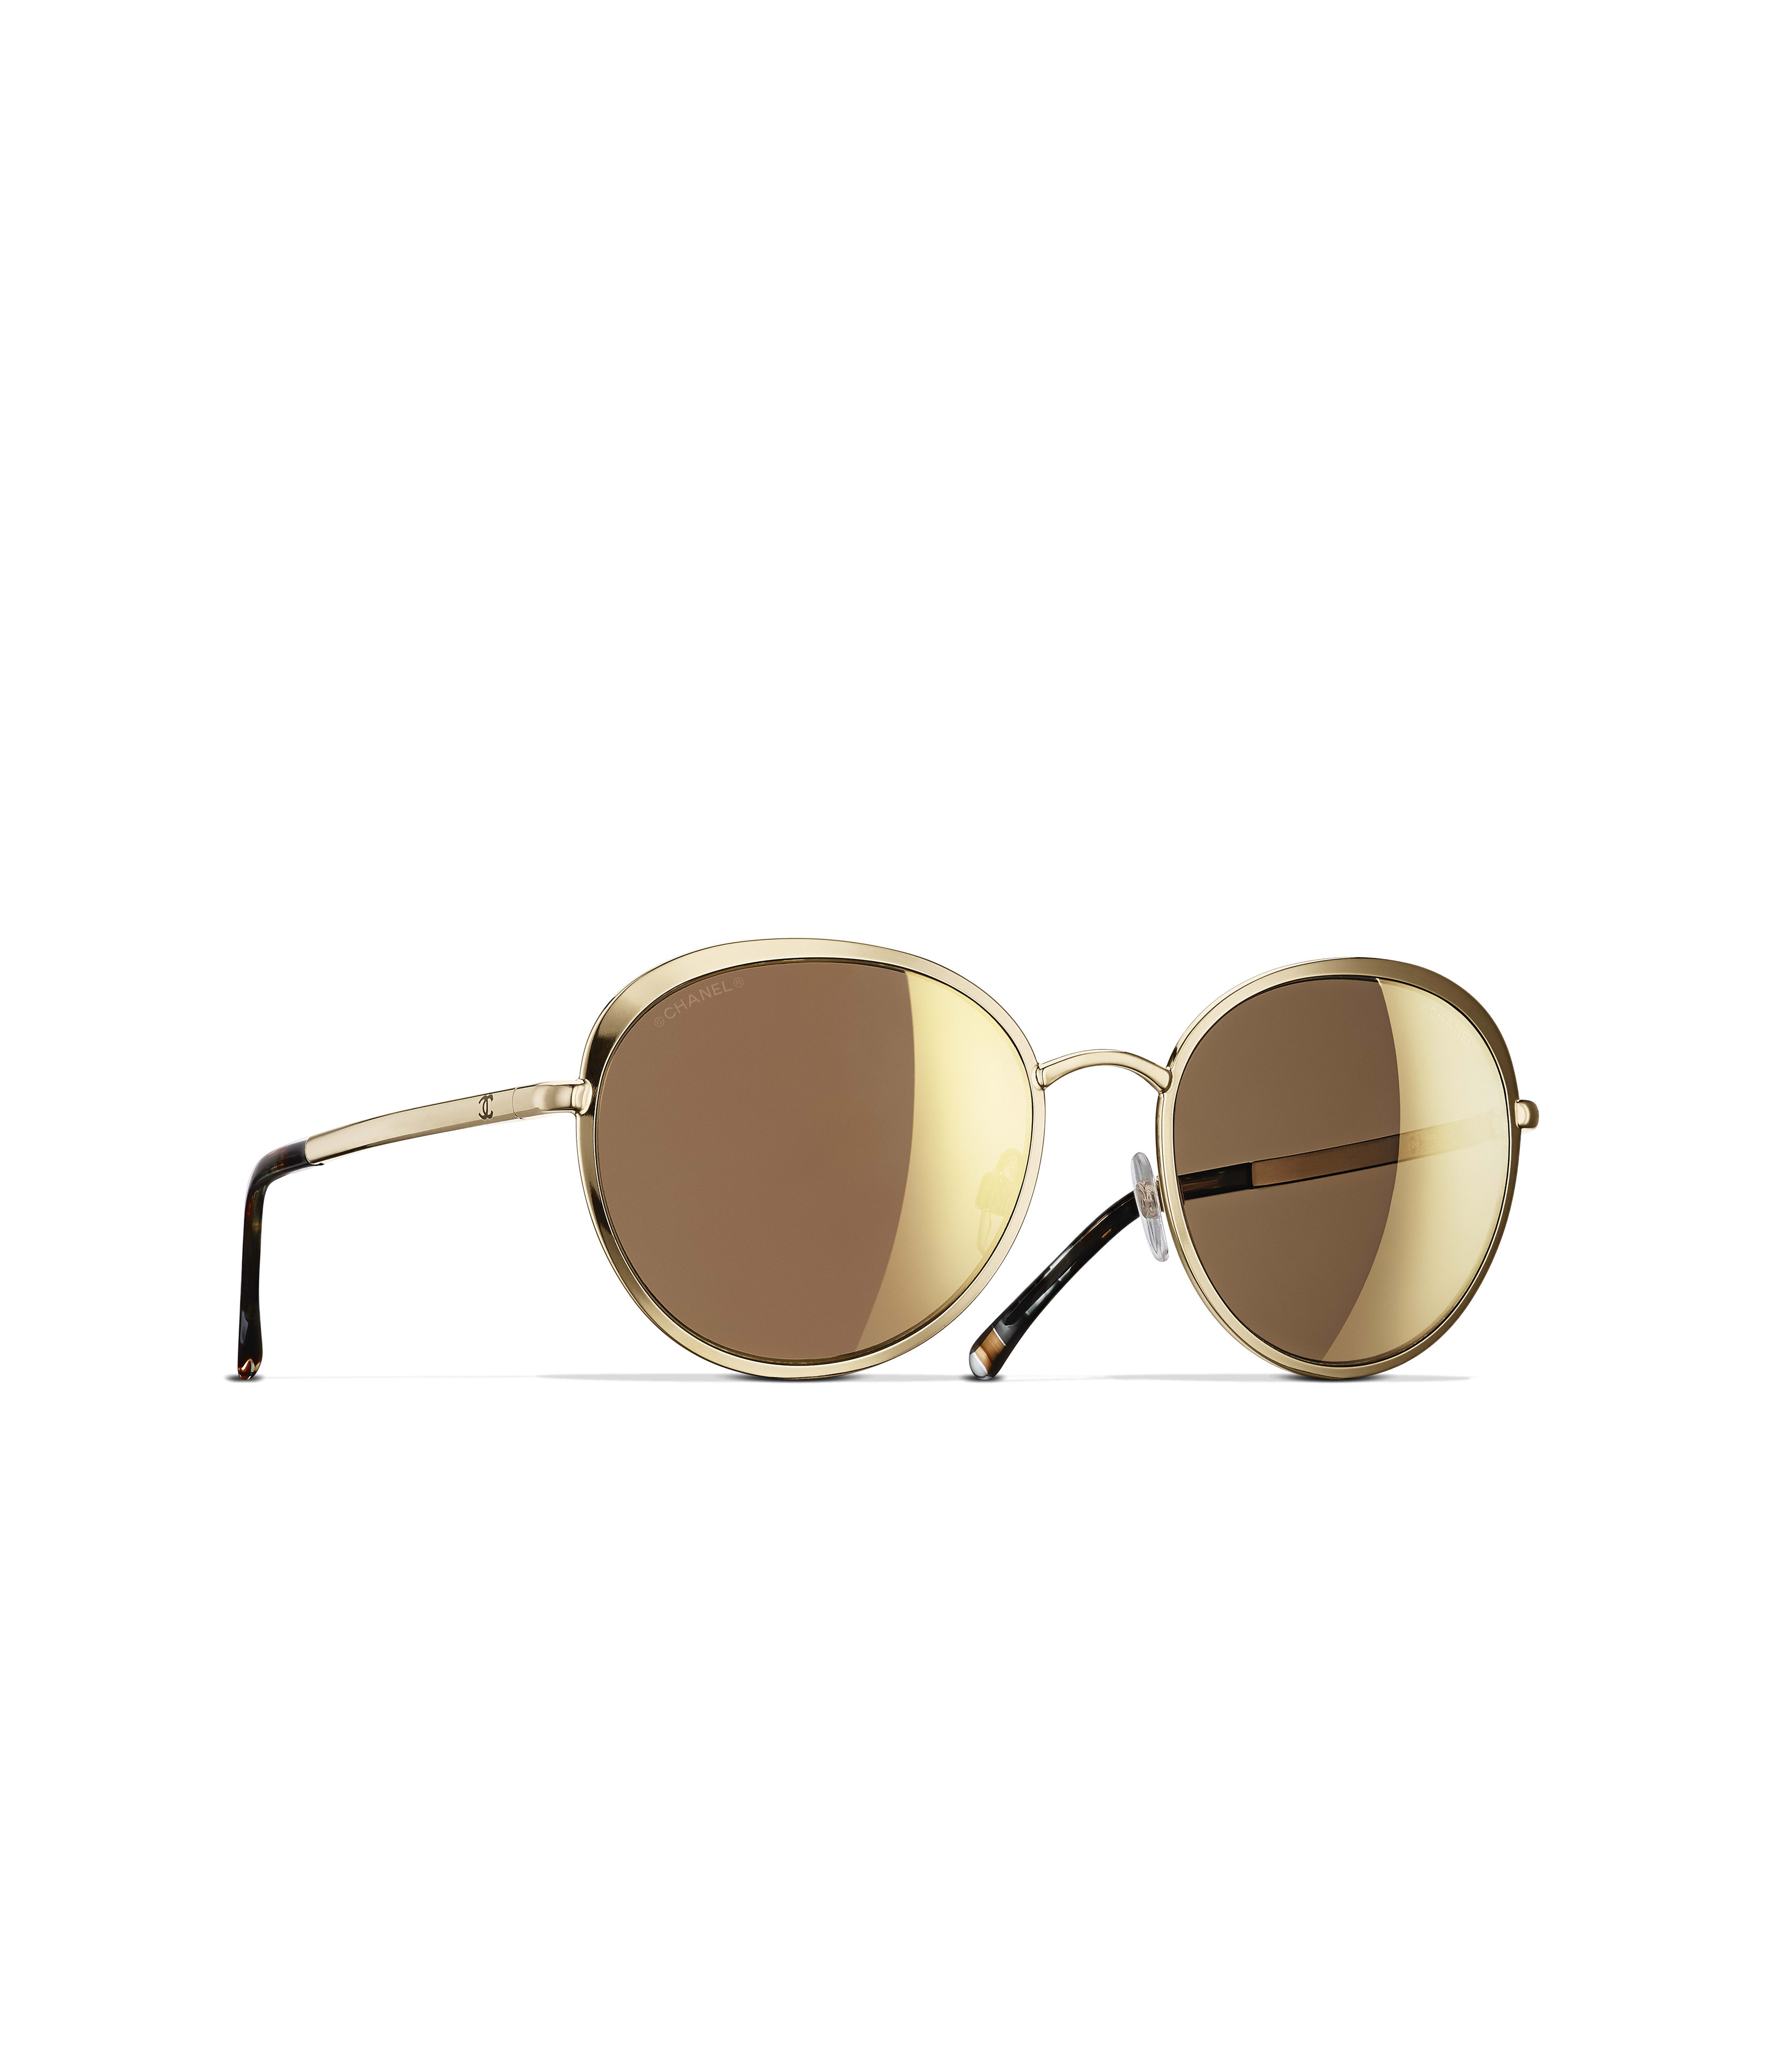 e6d61ea70 Round Sunglasses, metal, 18-karat gold lenses, gold - CHANEL